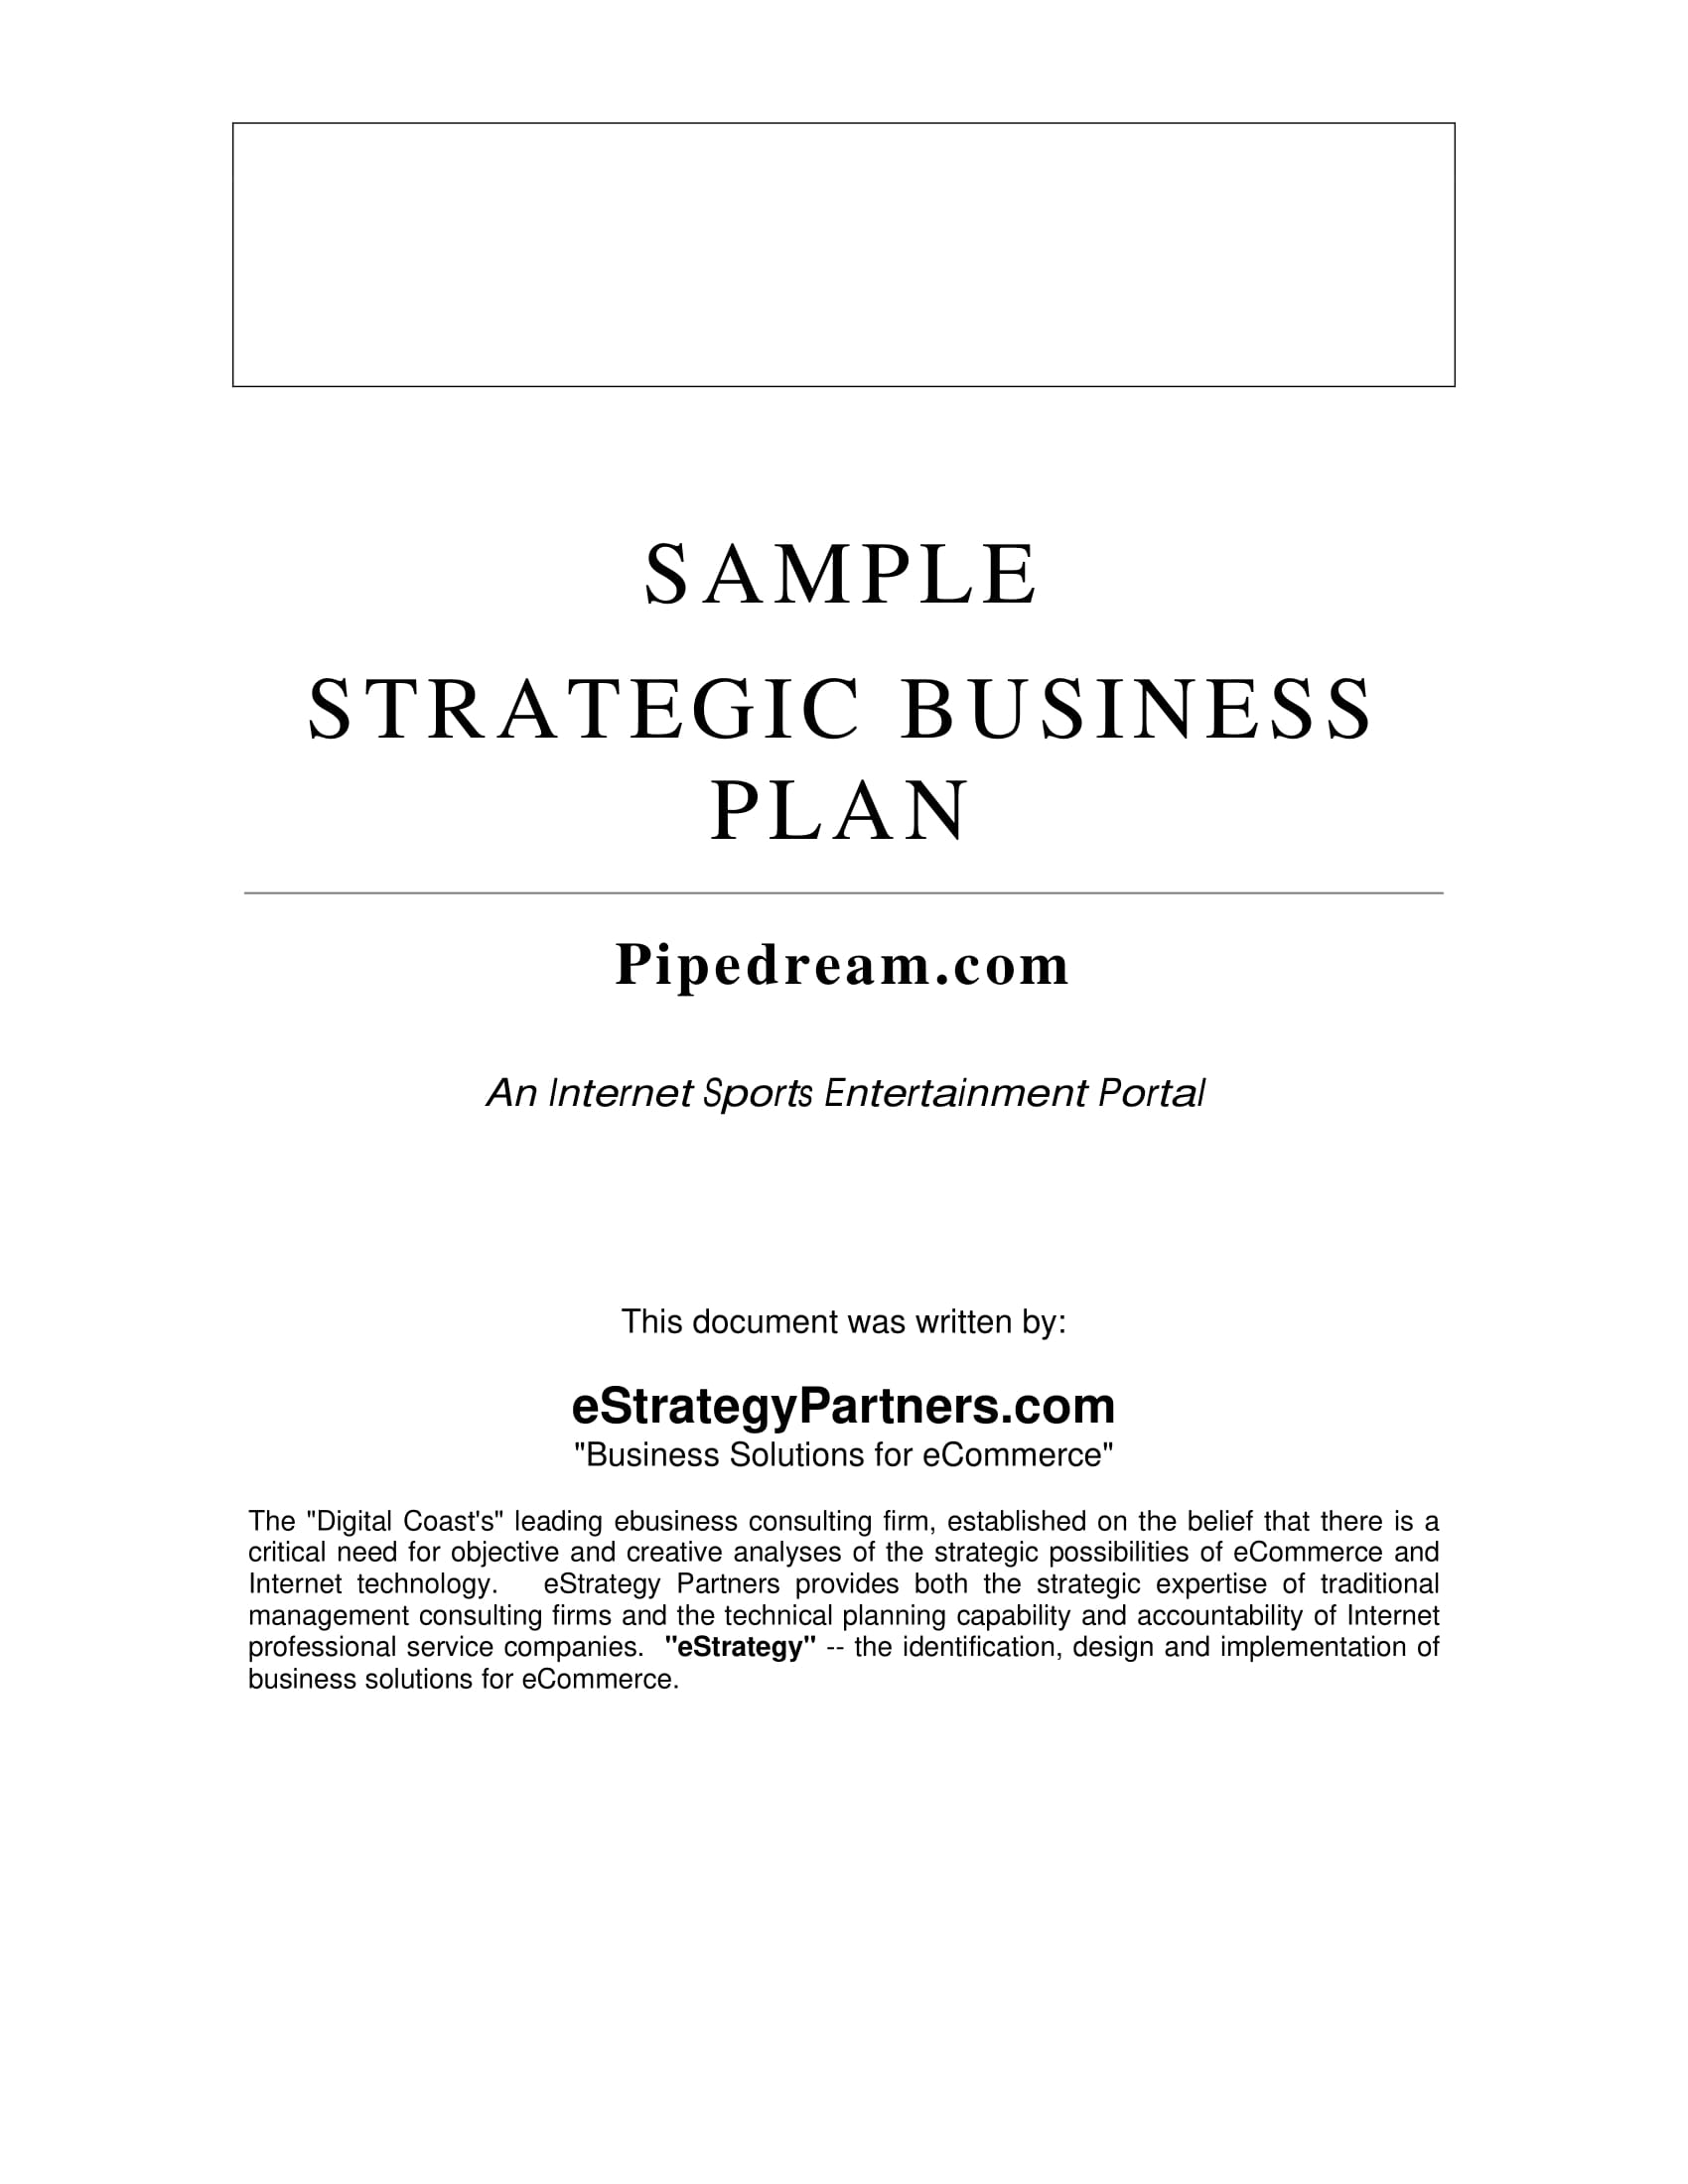 10 business development strategy plan examples pdf word strategic business plan for business development example 01 accmission